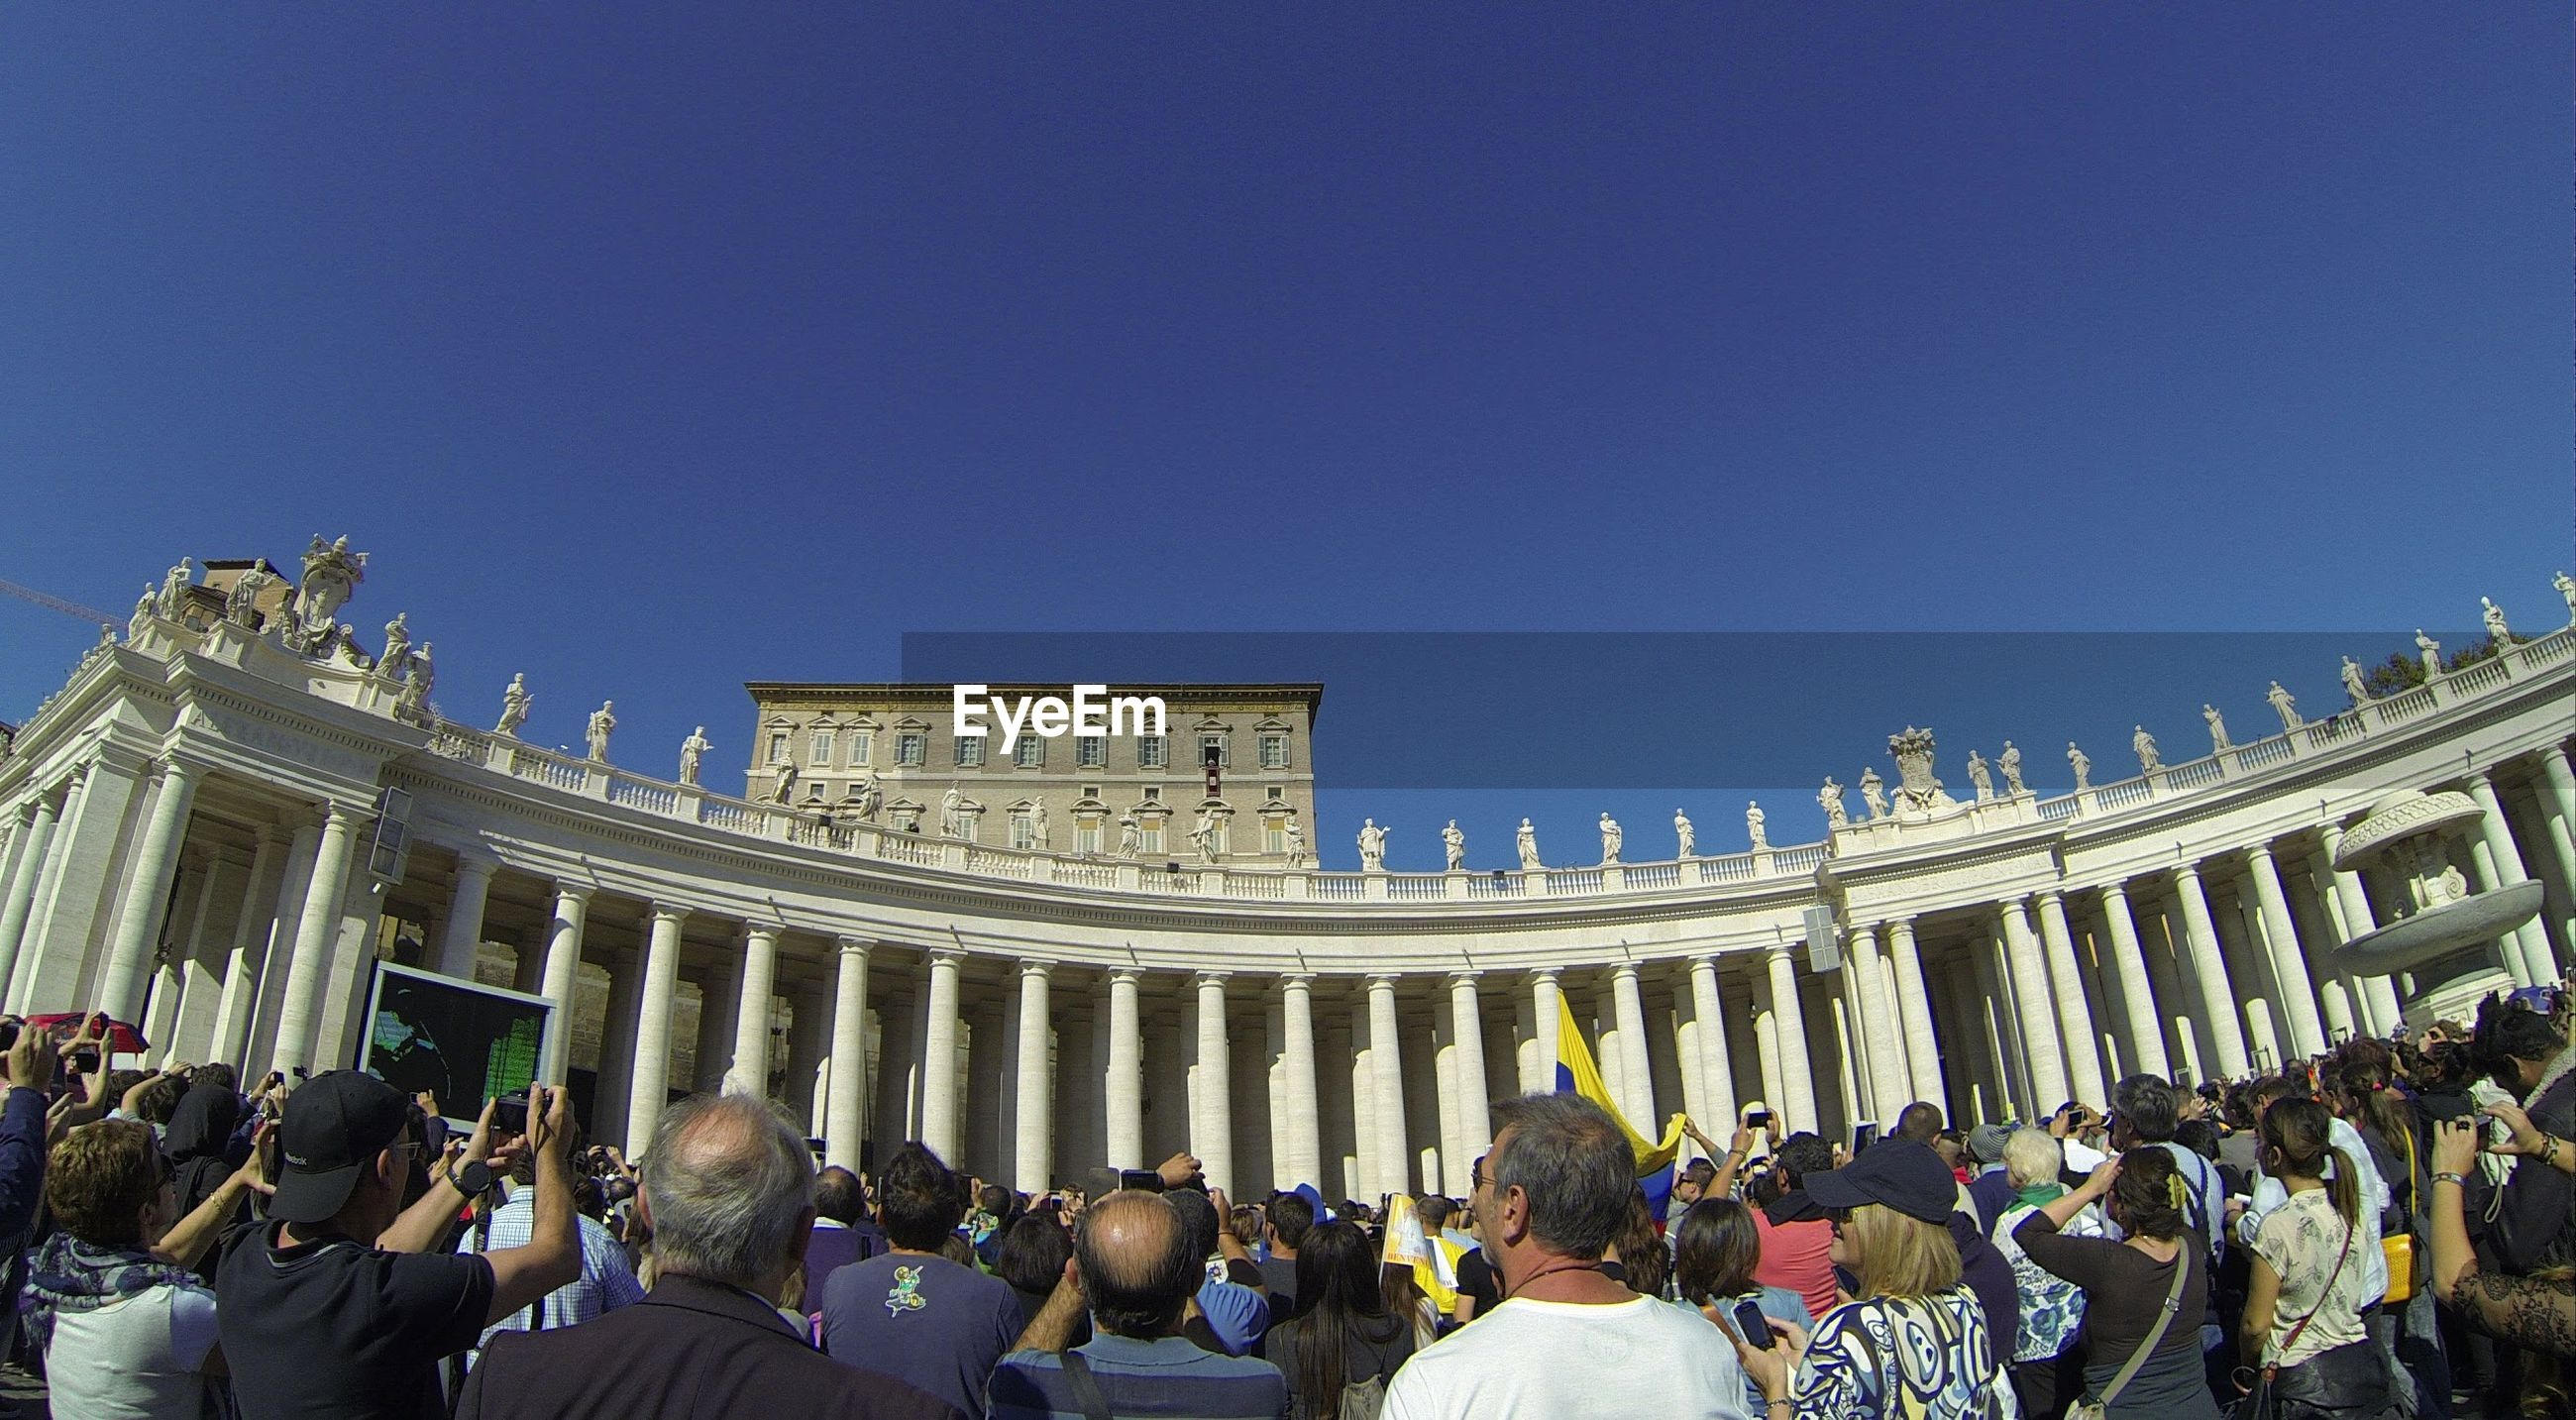 Crowd at st peter basilica against clear sky